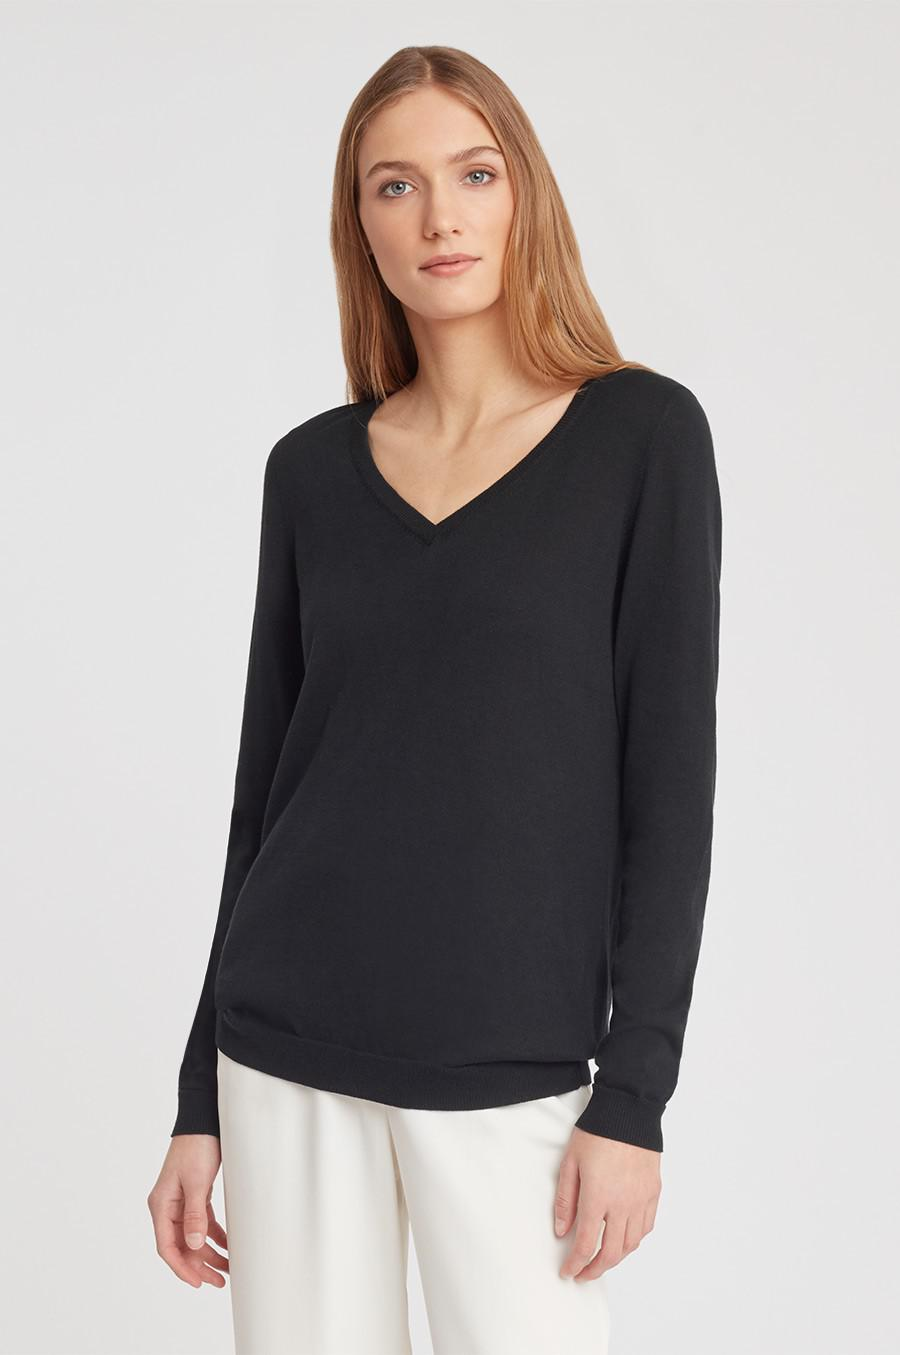 Women's Classic Cotton Cashmere V-Neck Sweater in Black | Size: XS | Cotton Blend by Cuyana 1